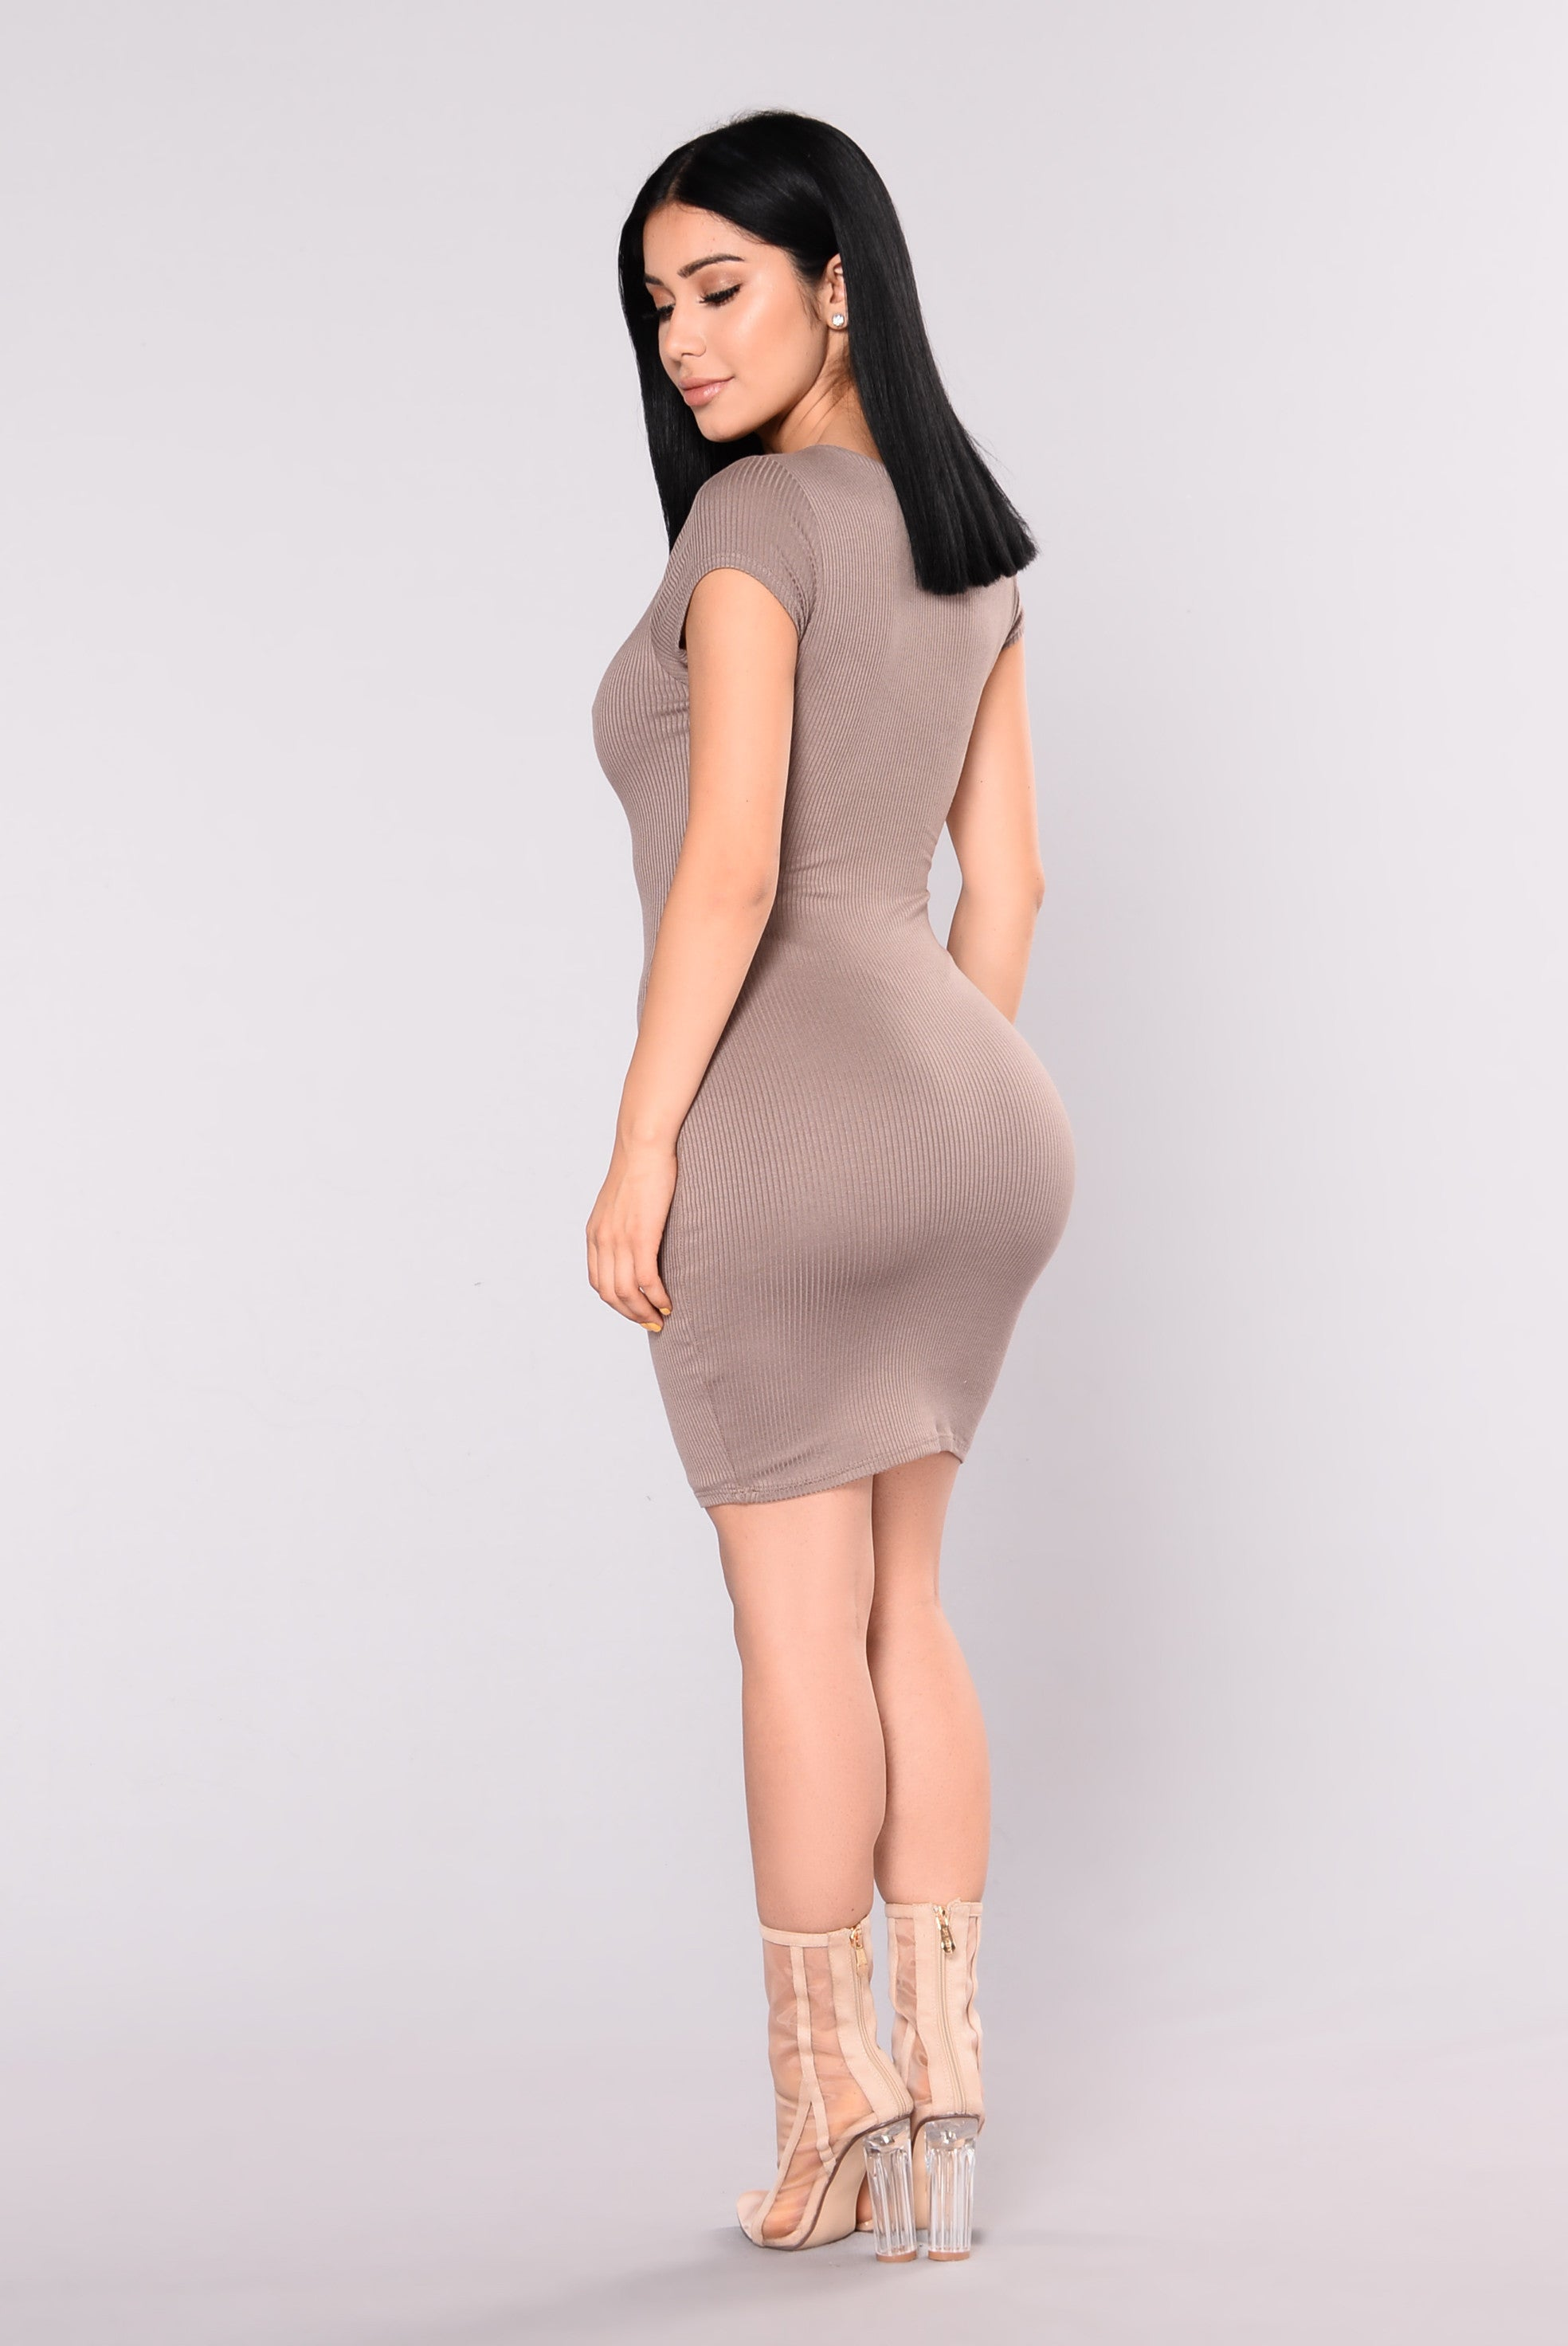 289f1caae65669 Bodycon Homecoming Dresses Fashion Nova